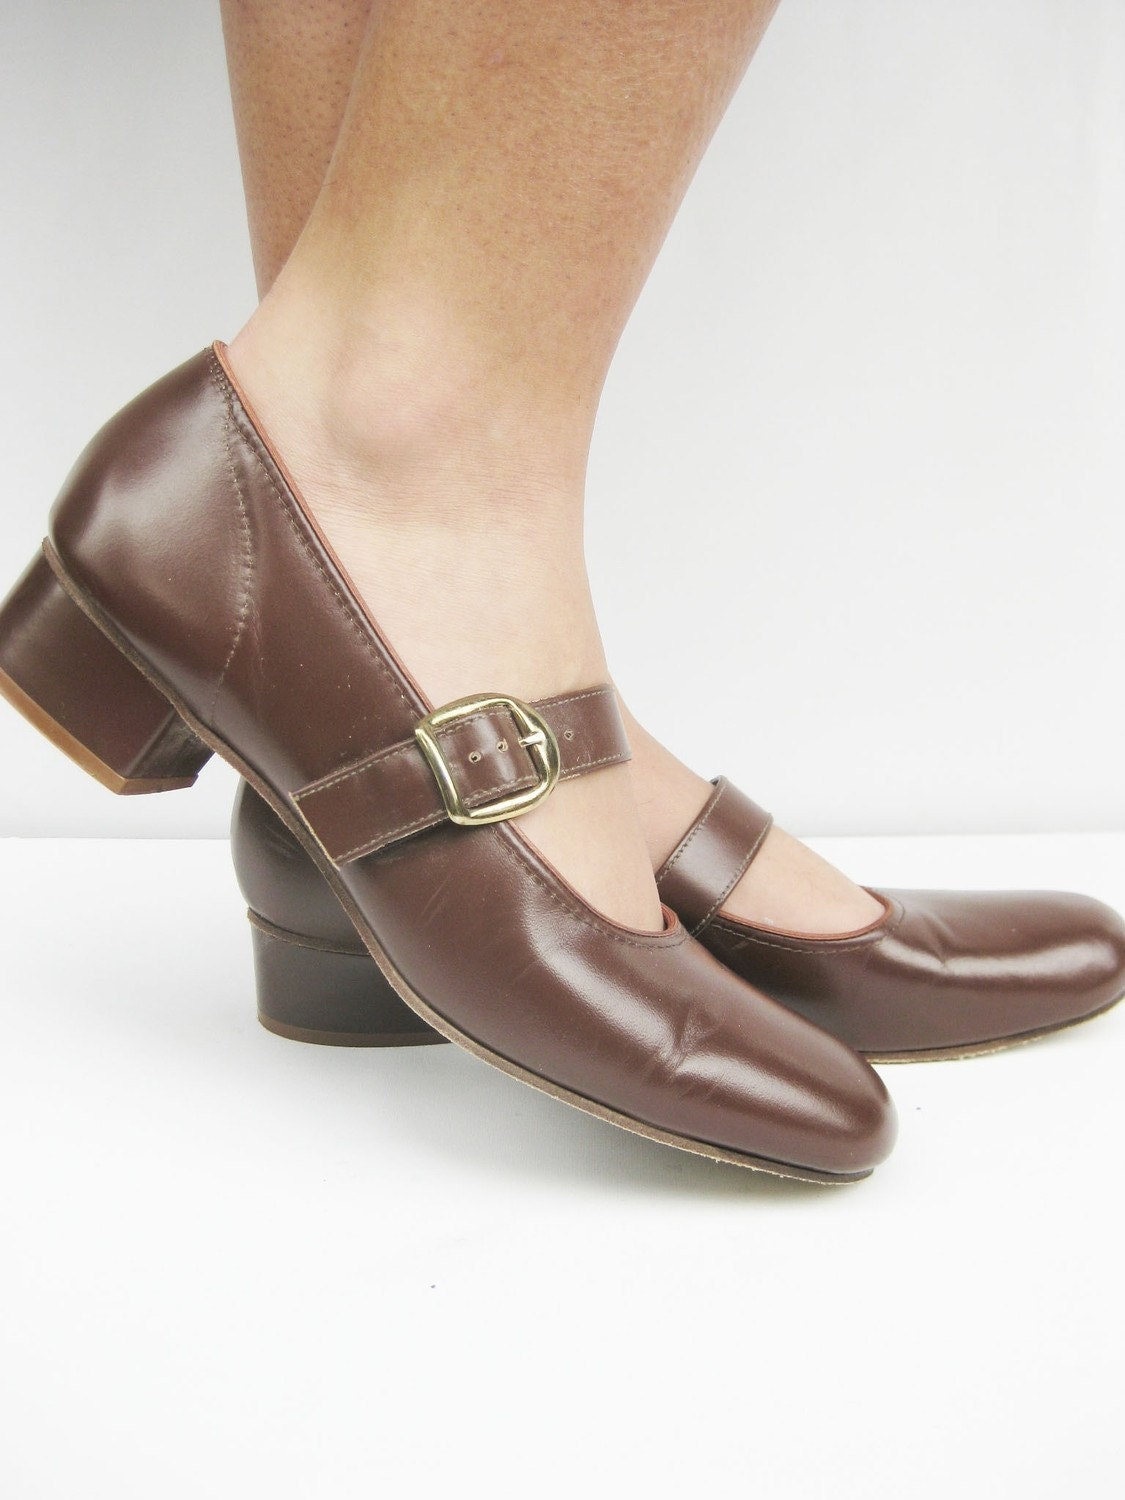 Shop for mary jane shoes for women at inerloadsr5s.gq Free Shipping. Free Returns. All the time.